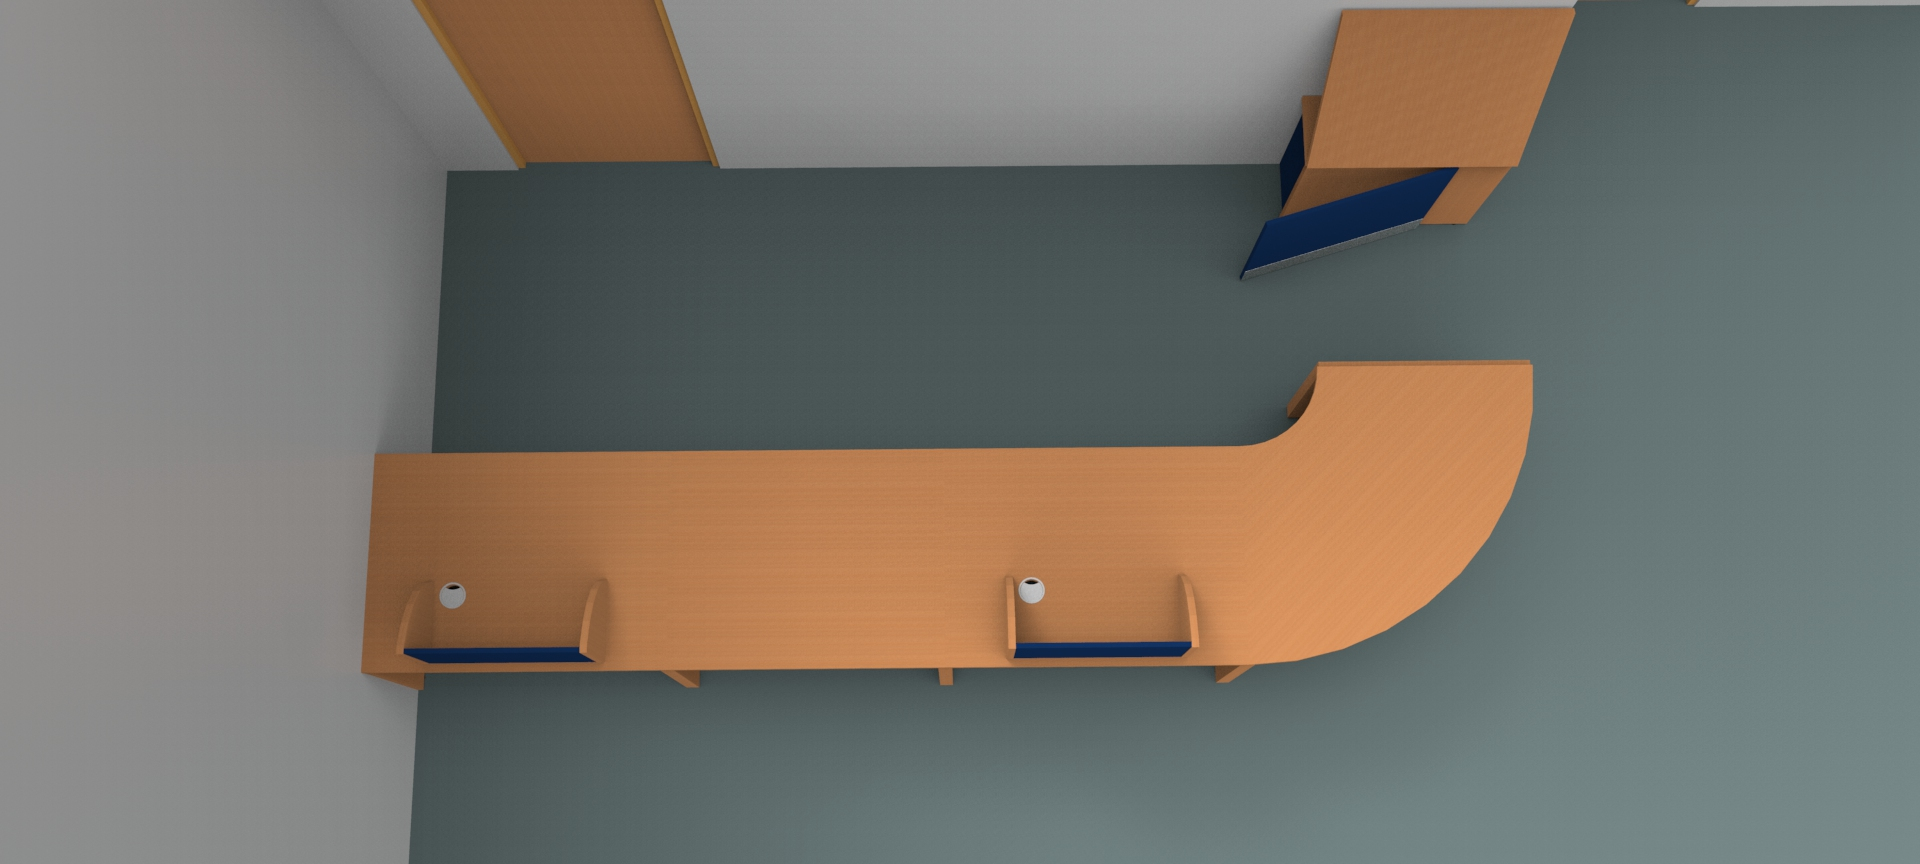 Render-Bespoke Flex reception desk -High view